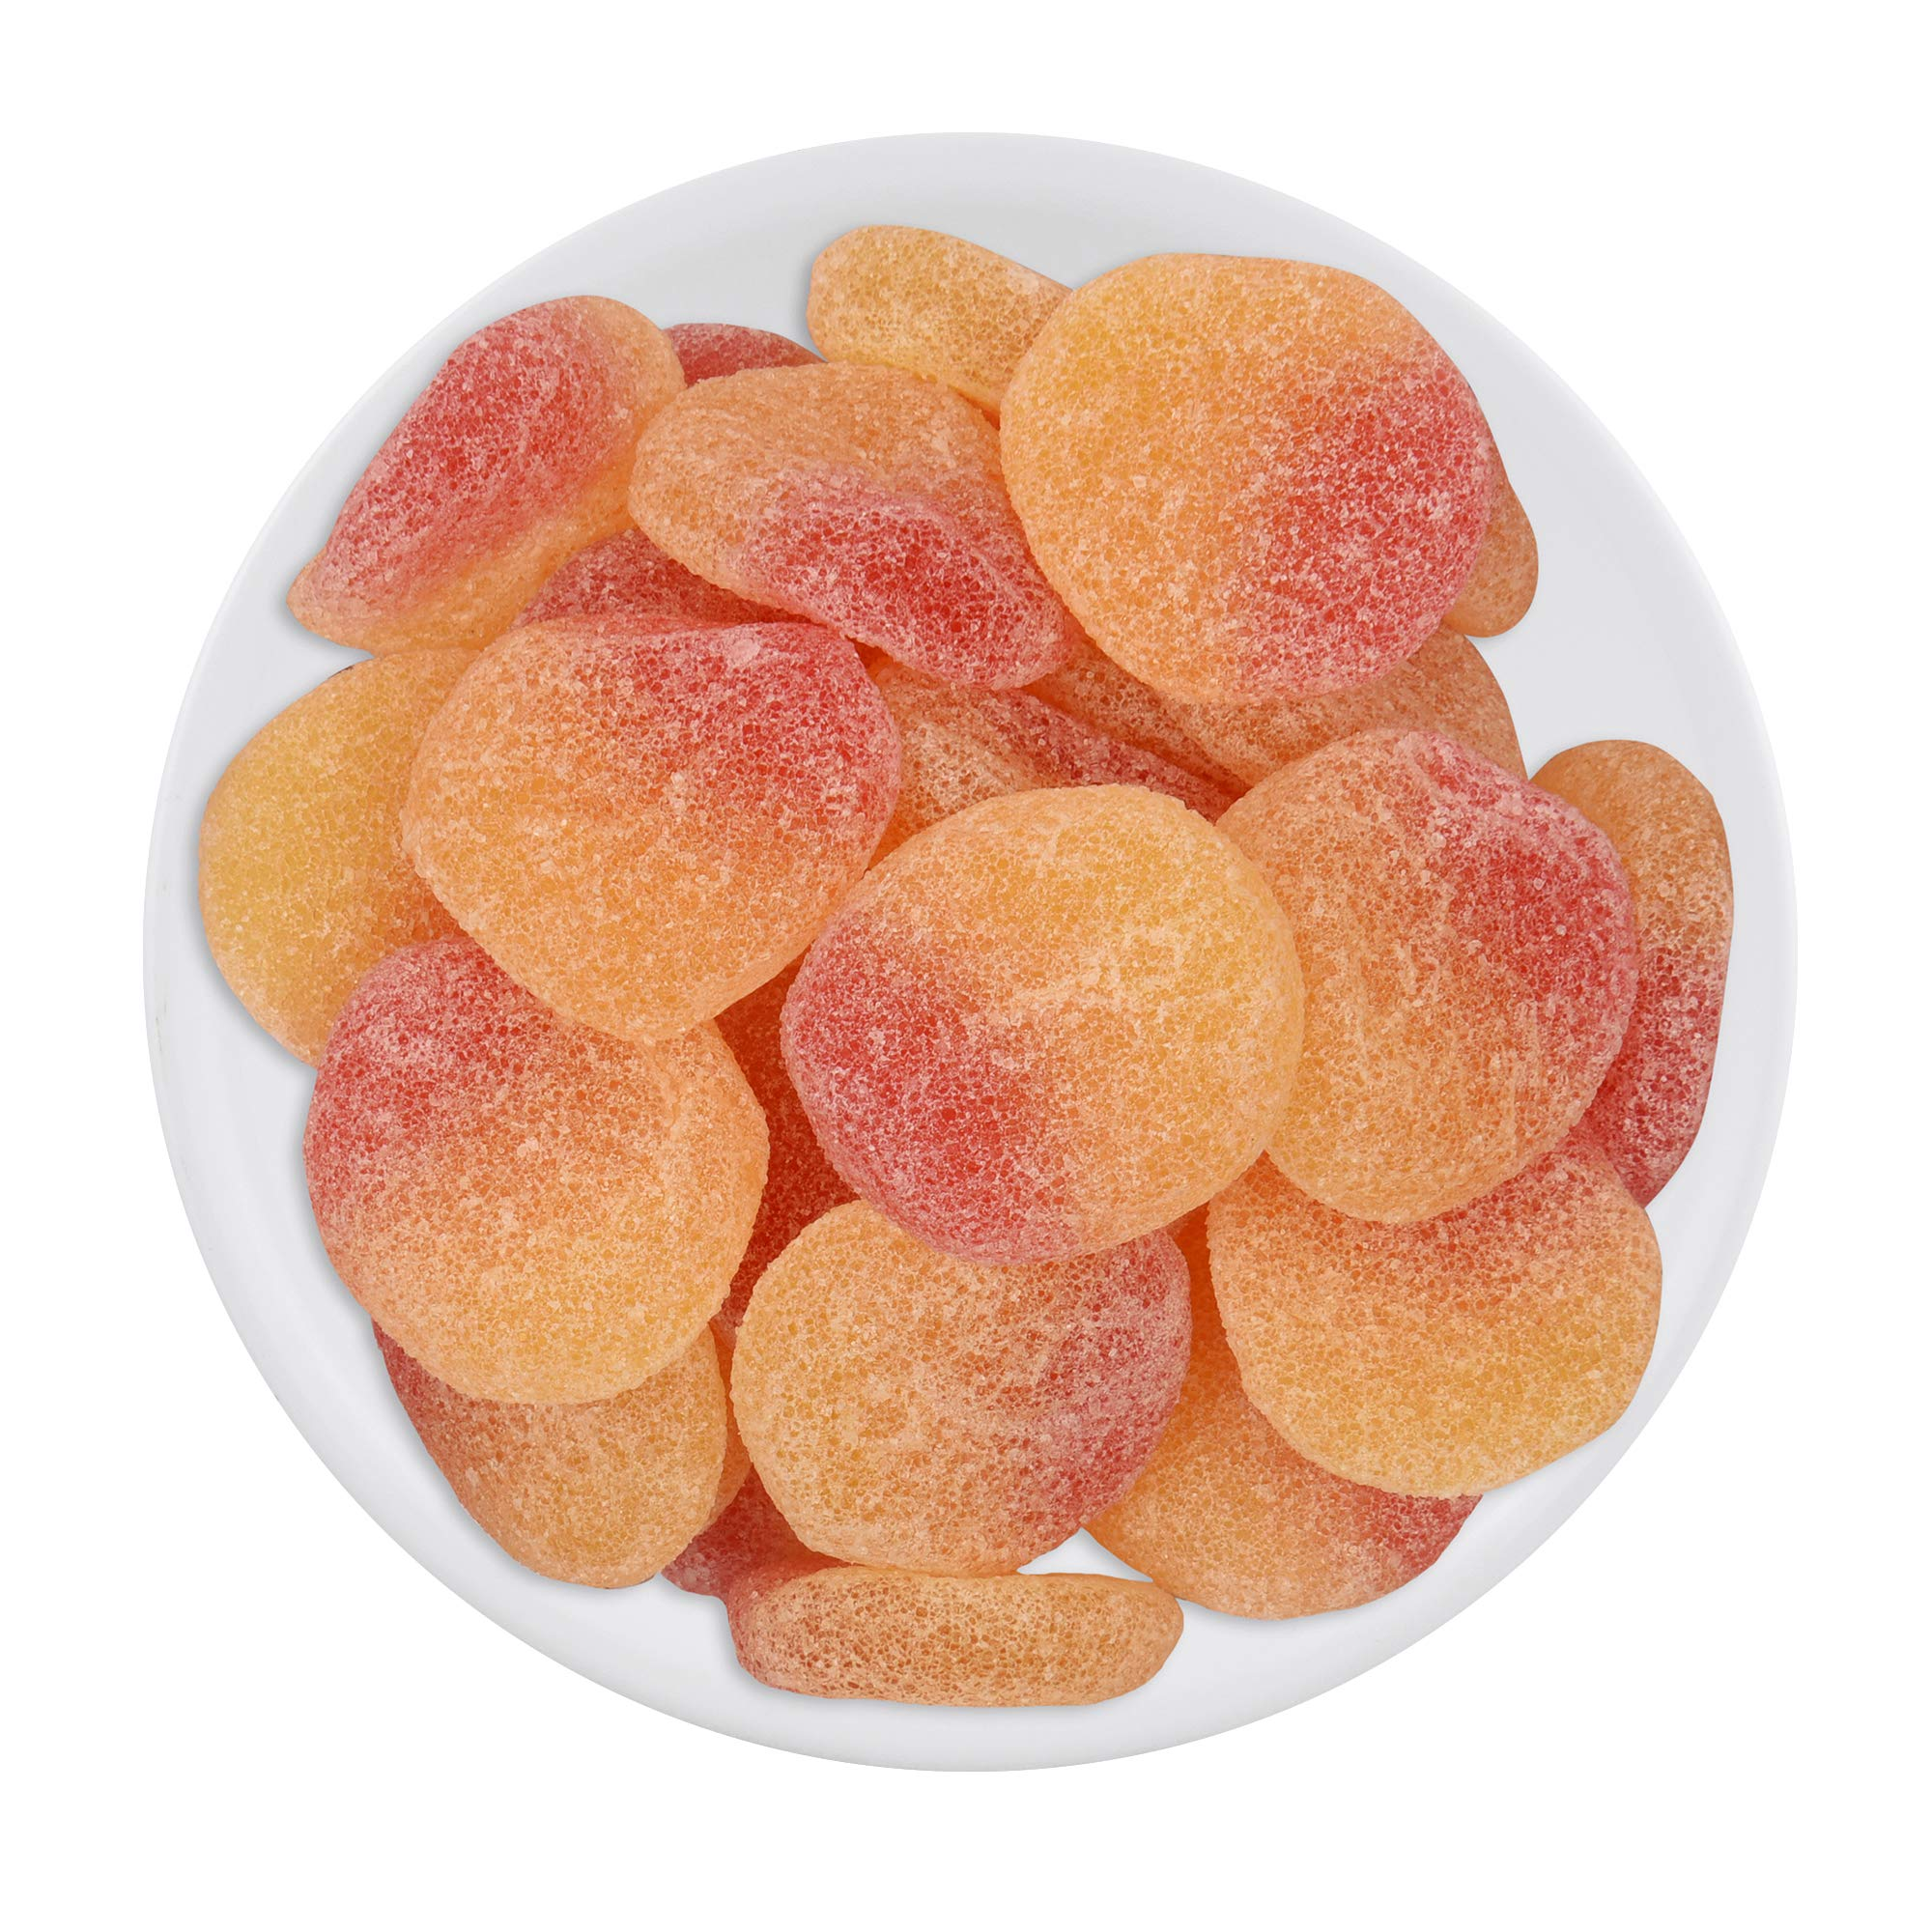 House Of Candy Fizzy Peaches- Peach Flavor Jellies- Sugar Coated, Jujube Candies (B07Z7WB92H) Amazon Price History, Amazon Price Tracker